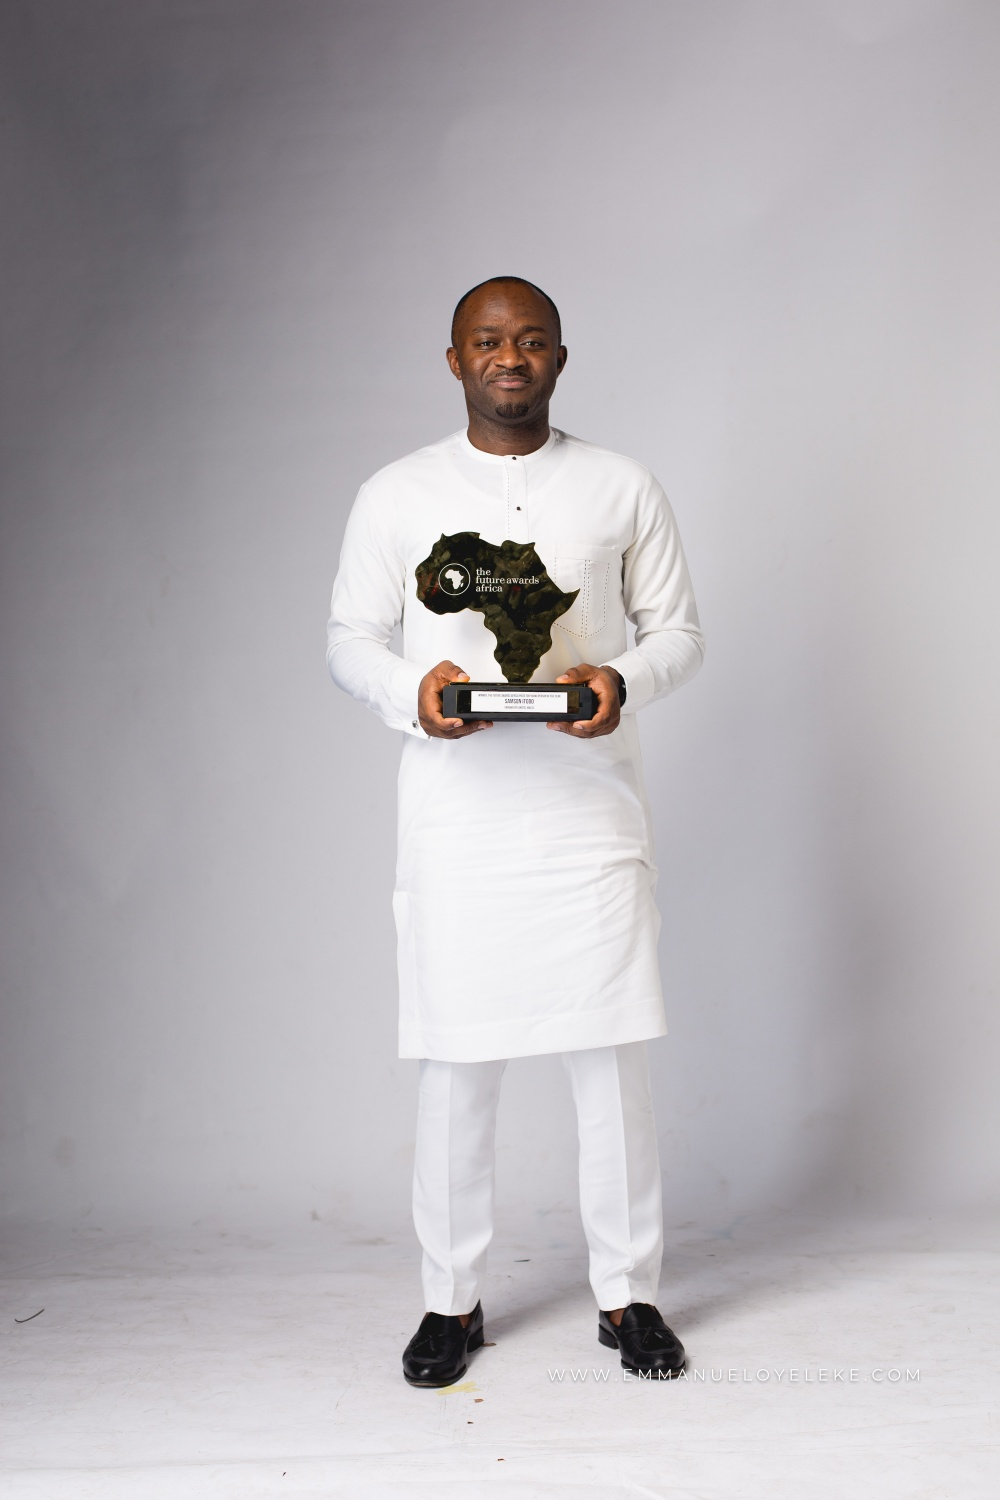 Winner Prize for #TFAA2018 Young Person of the Year, Samson Itodo